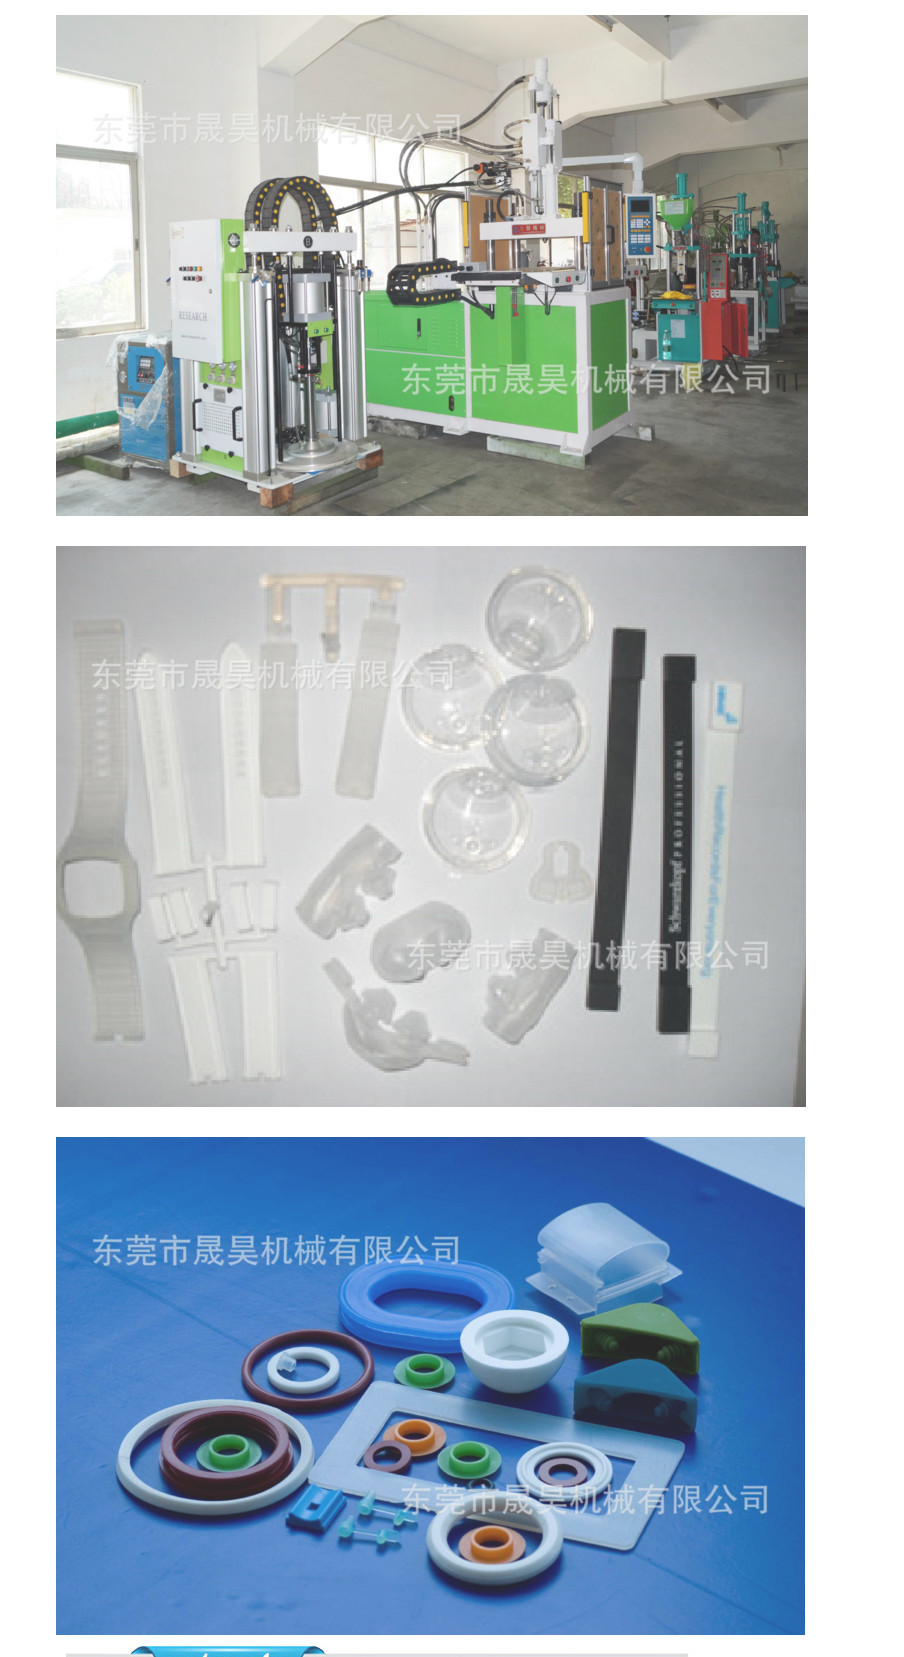 Silicone injection molding machine dedicated to the supply of liquid silicone injection molding mach